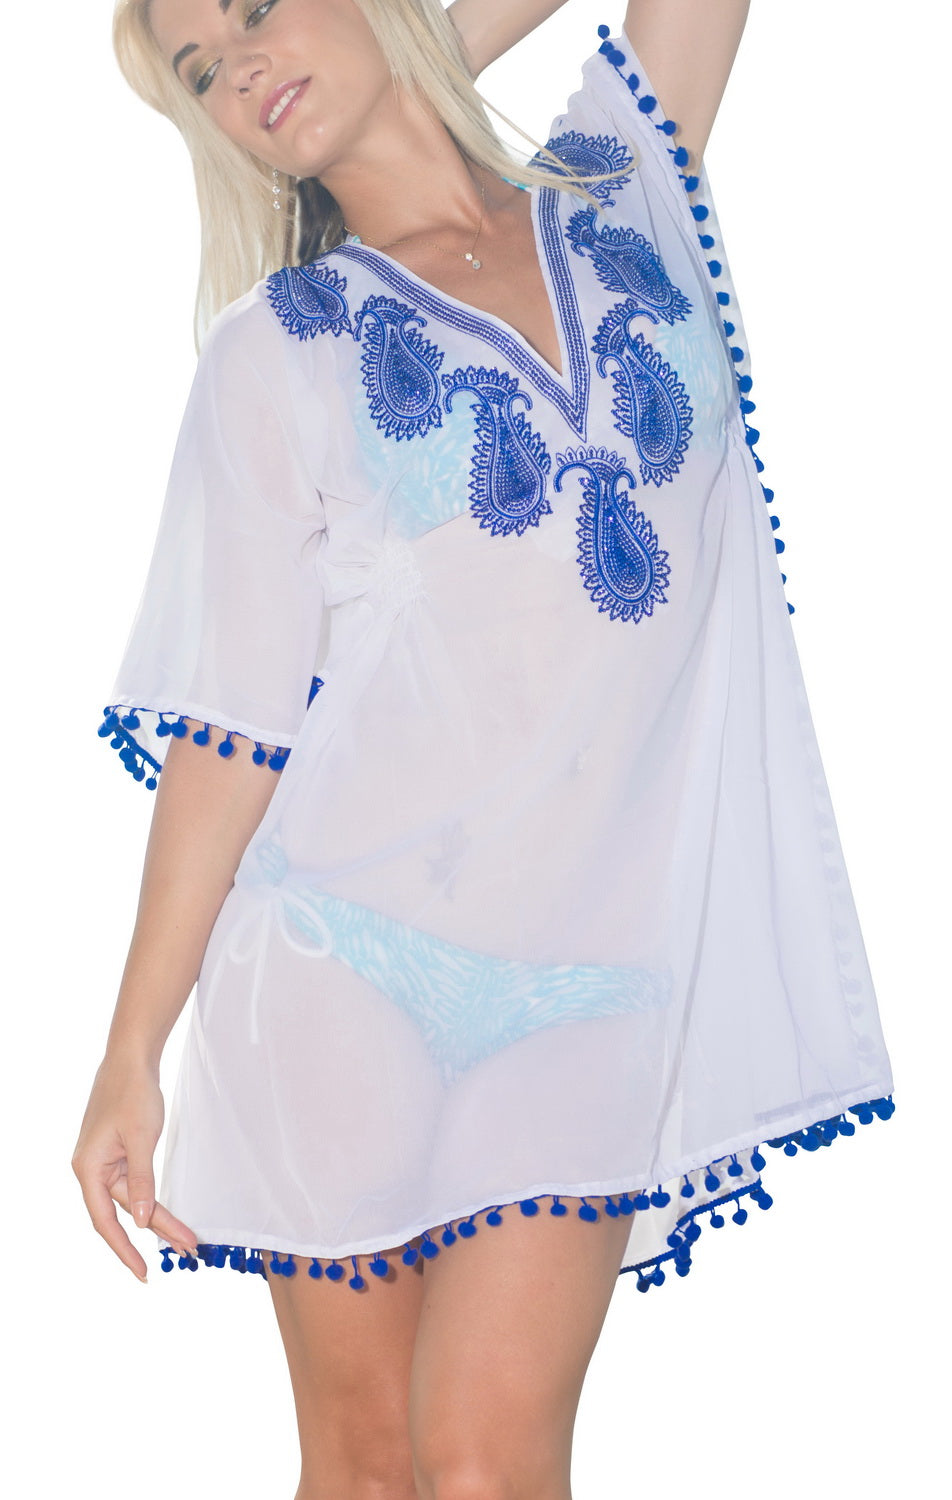 la-leela-womens-beach-cover-up-blouse-top-white_g332-osfm-10-16-m-xl